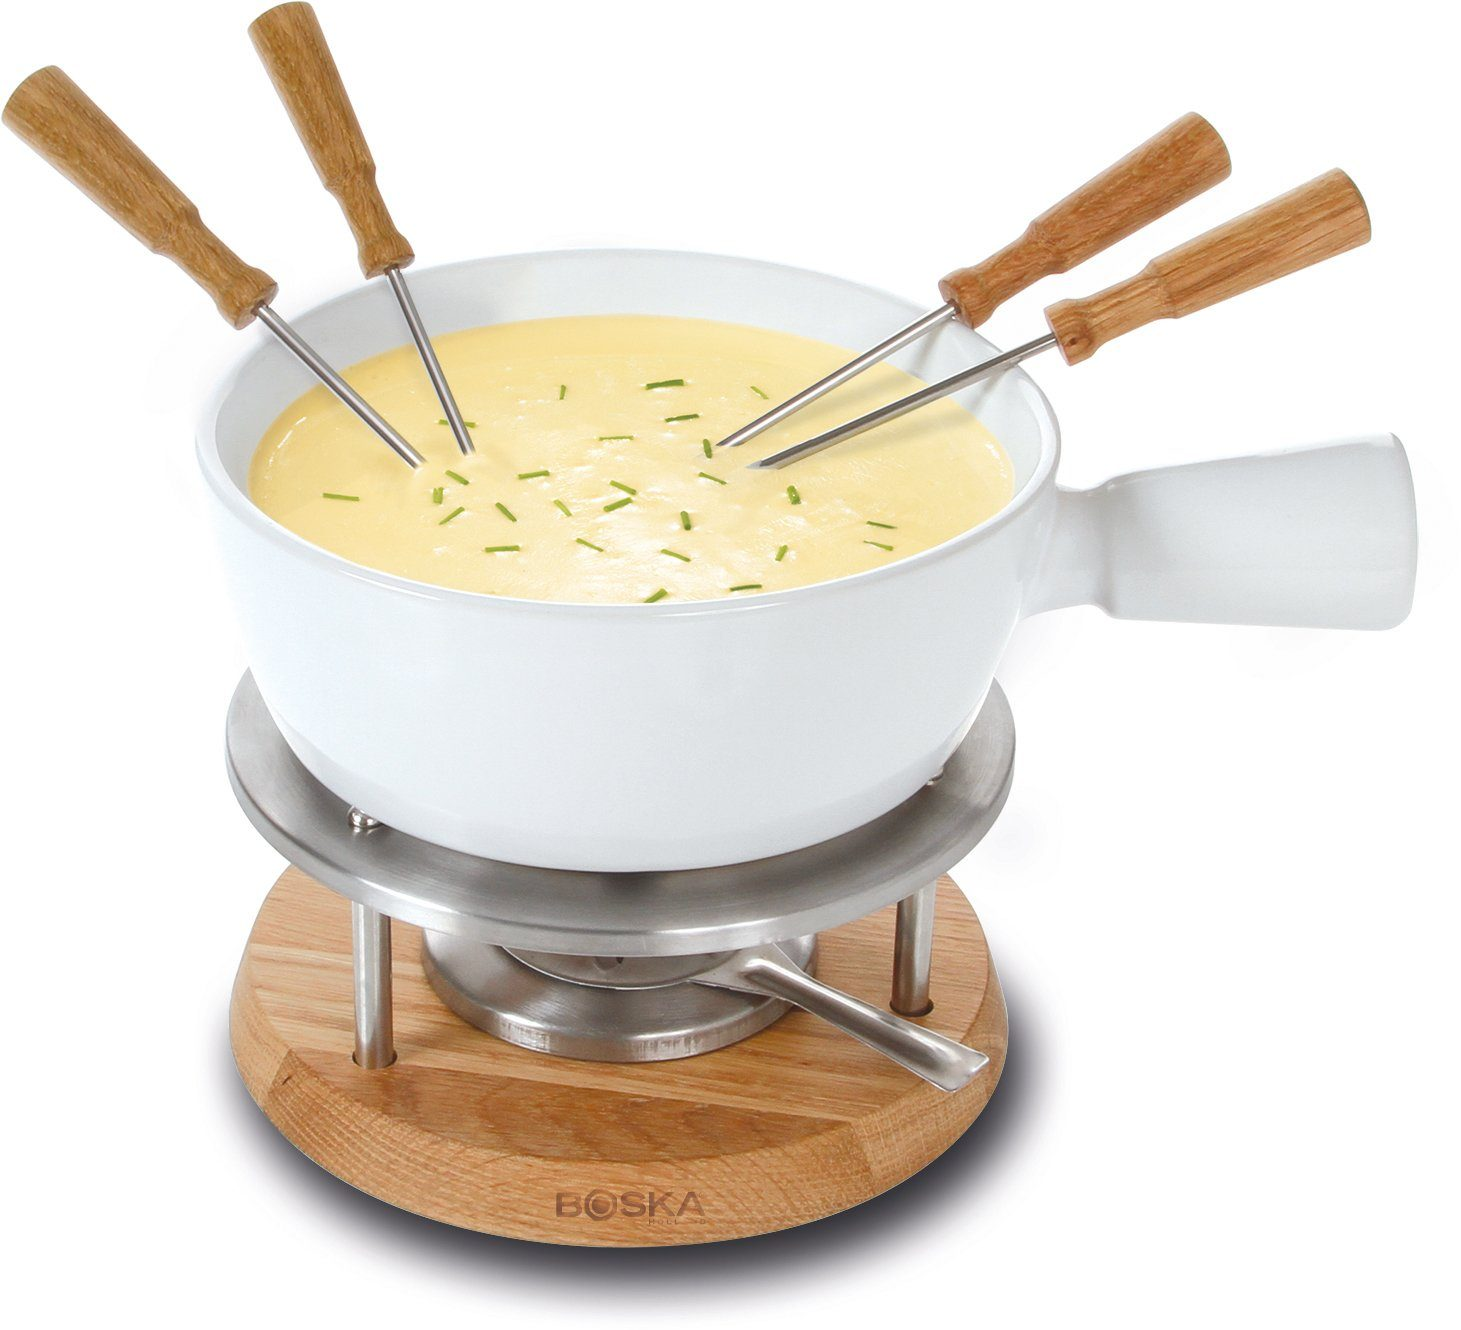 BOSKA Holland Fondue-Set, 1 Liter, »BIANCO«